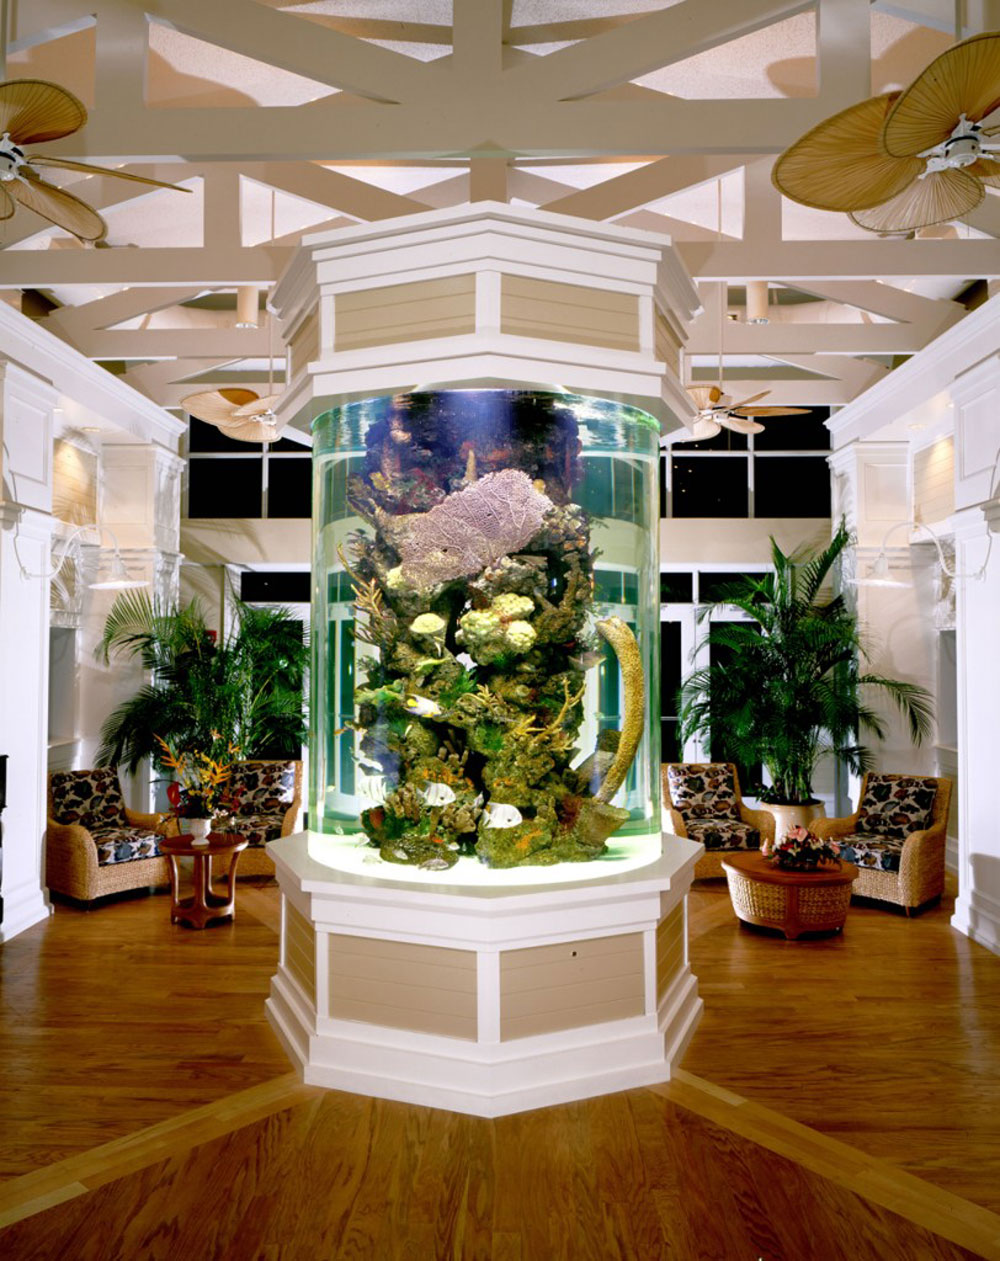 Change the look of your room with this aquarium tank 3 Change the look of your room with these aquarium tanks